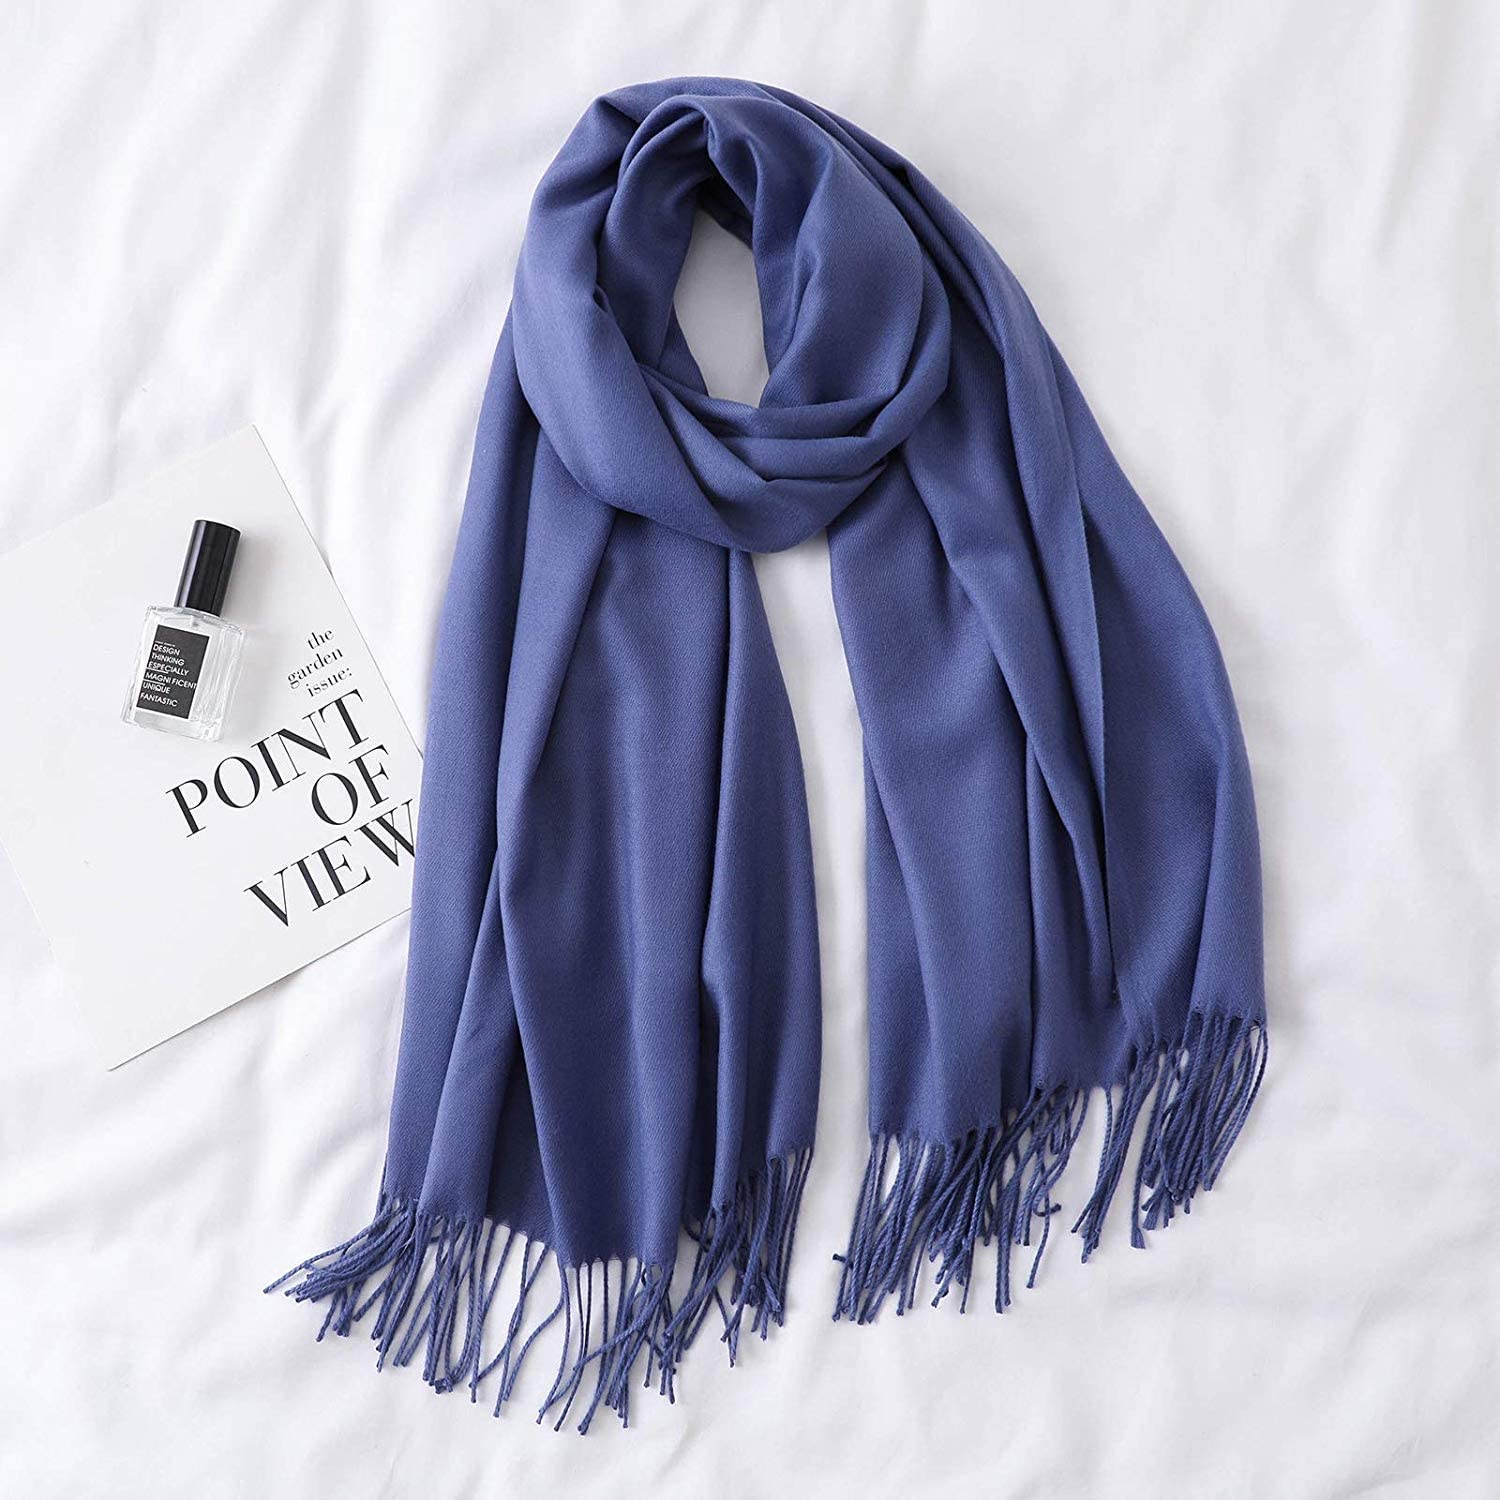 Scarf for Gift Scarf Korean Female Autumn and Winter Monochrome Warm Thick Long Summer air Conditioning Tassel Shawl Dualuse (color   Red) Classic Scarf (color   Navy)